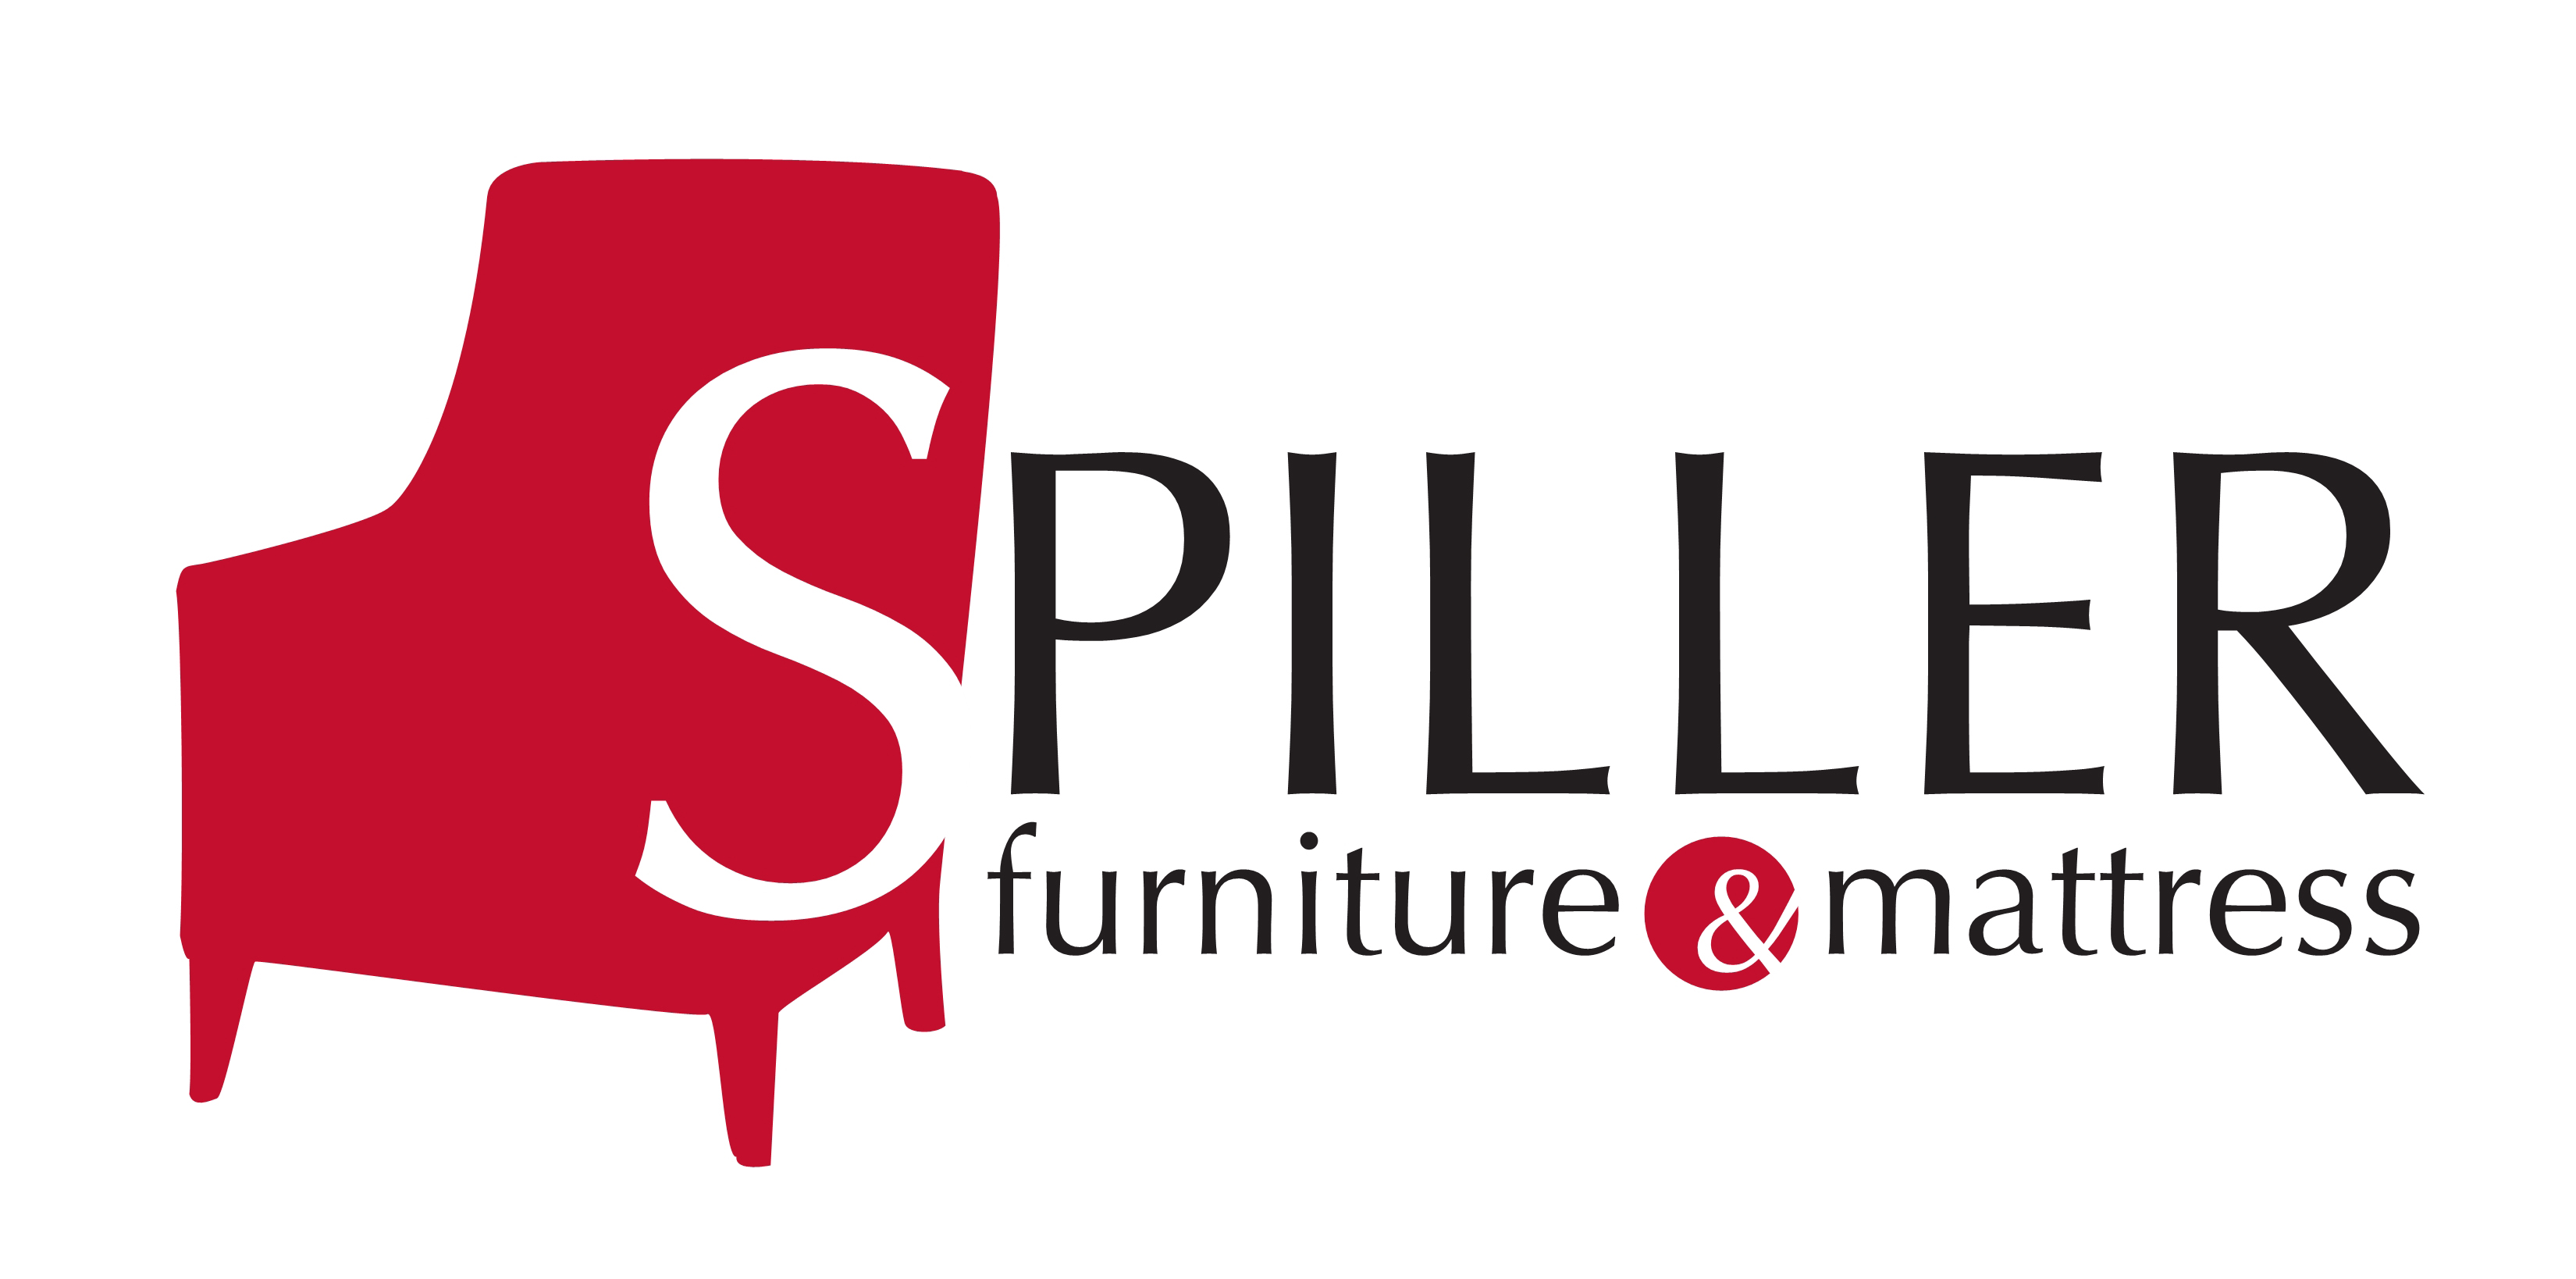 Furniture Store Chain Earns Bronze Retailer Of The Year Title